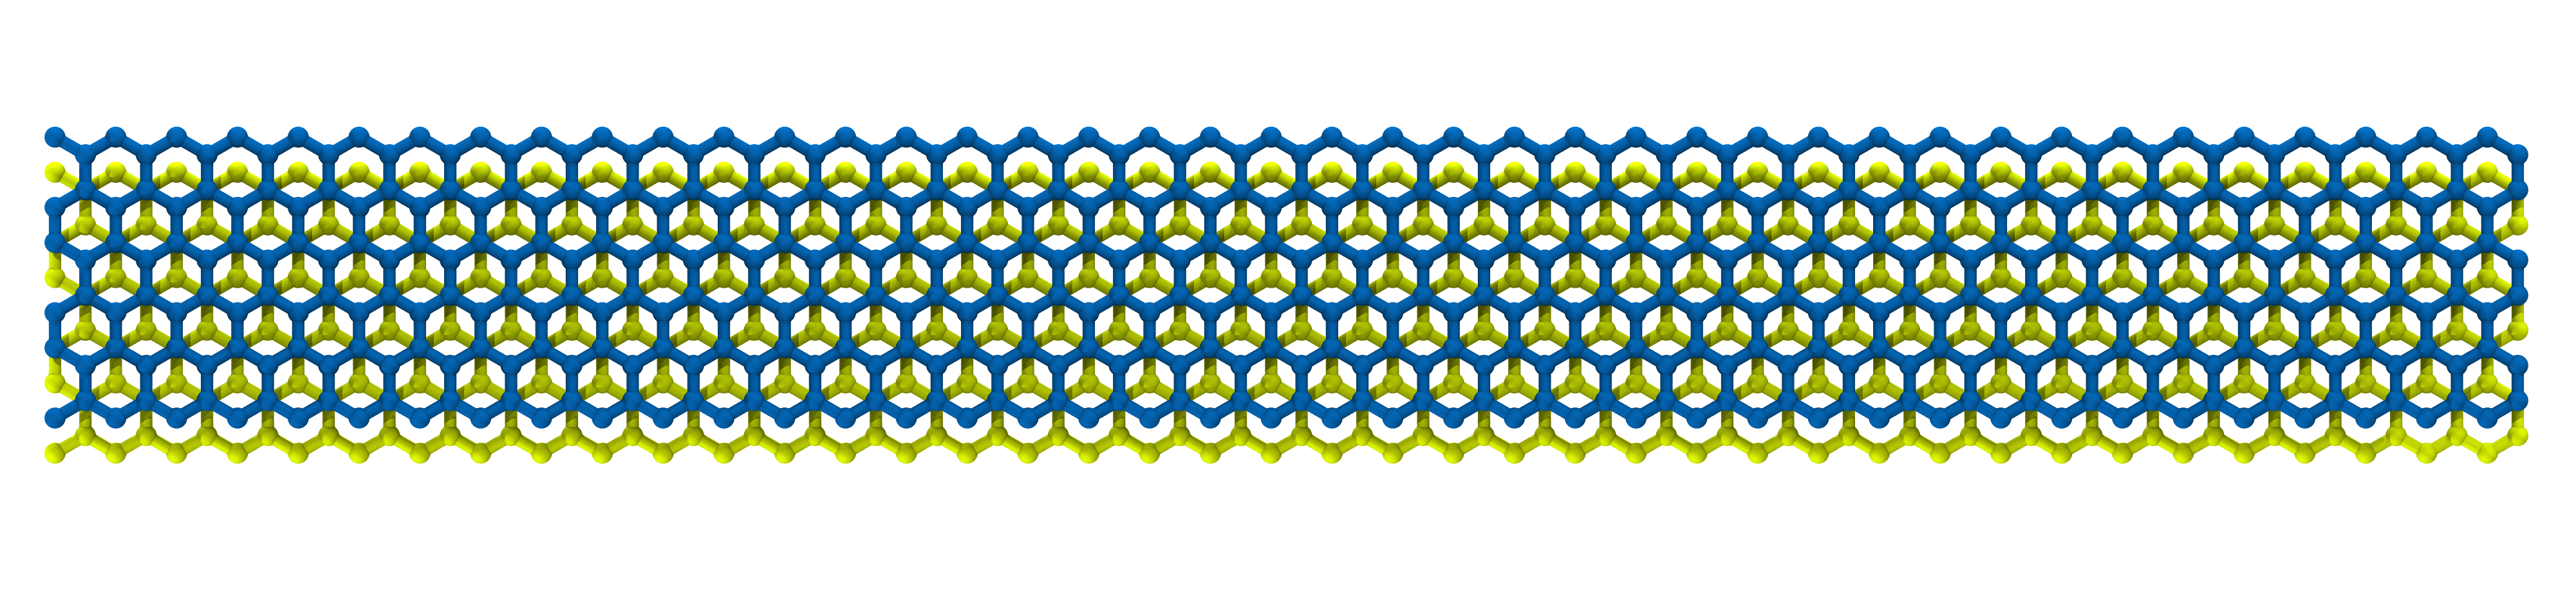 ../_images/10nmx1nm_bilayer.png